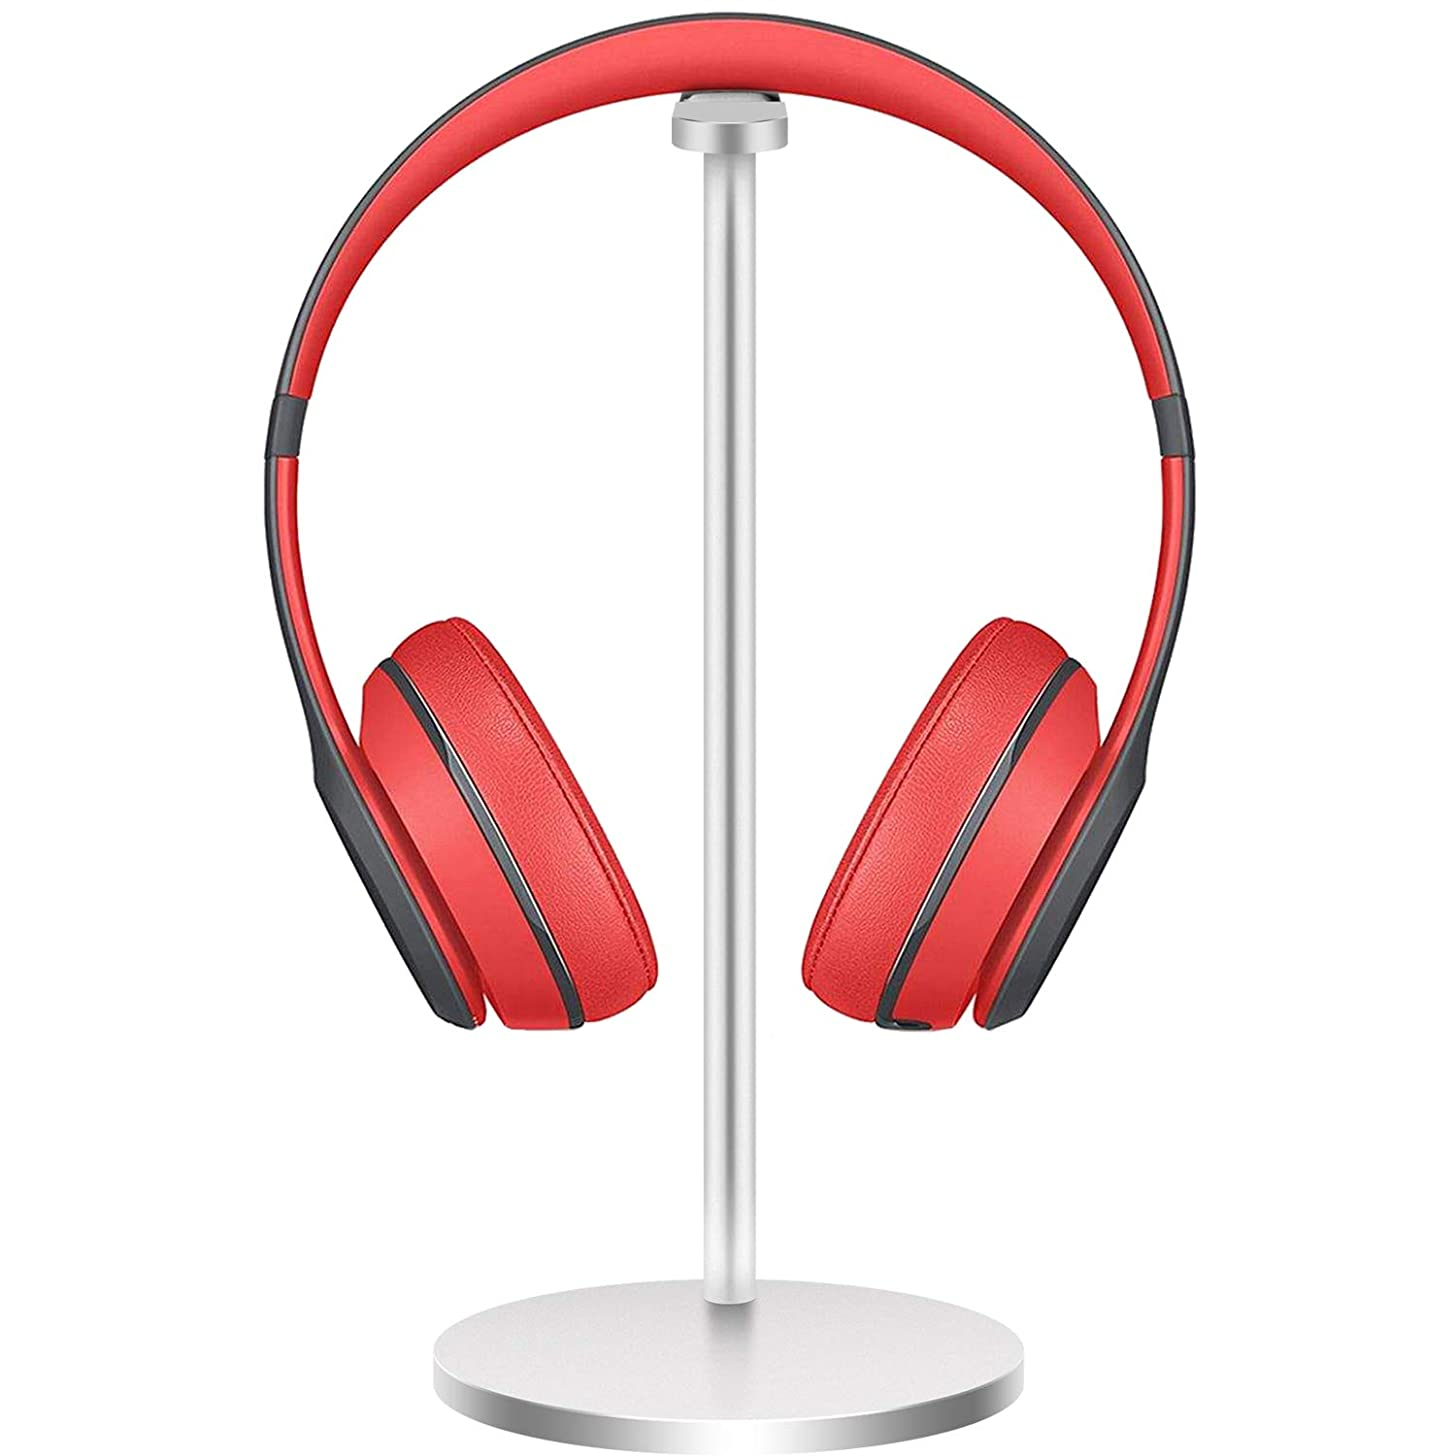 Aluminum Headphone Stand Headset Holder New Bee Headset Stand/Hanger for All Headphone Sizes (Silver)